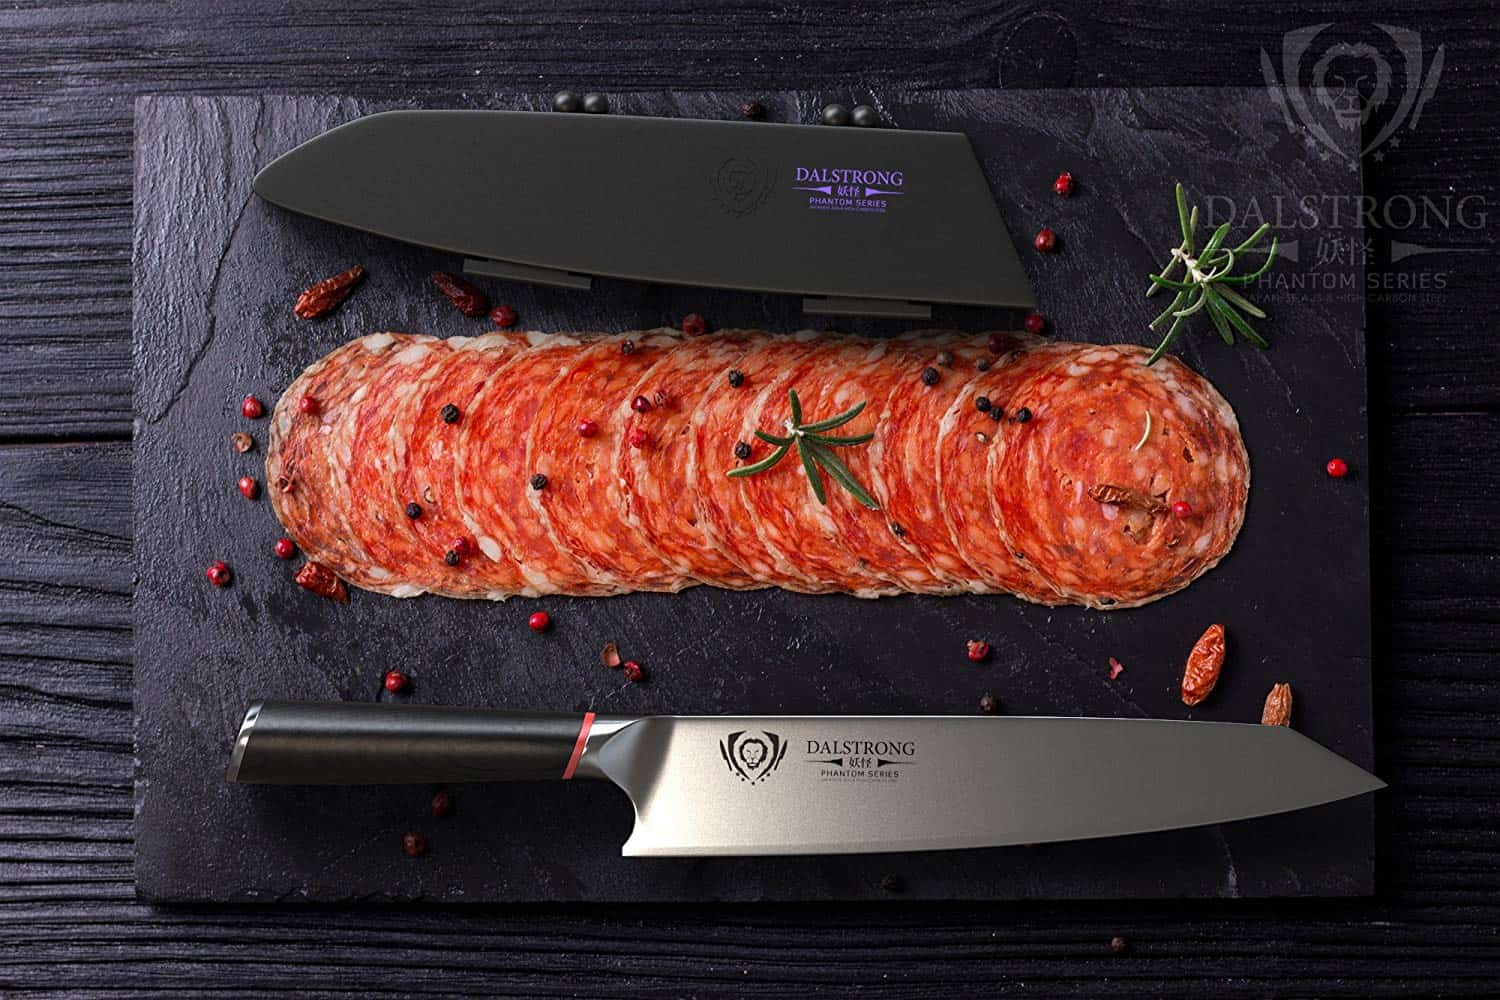 Dalstrong bbq smoker chefs knife